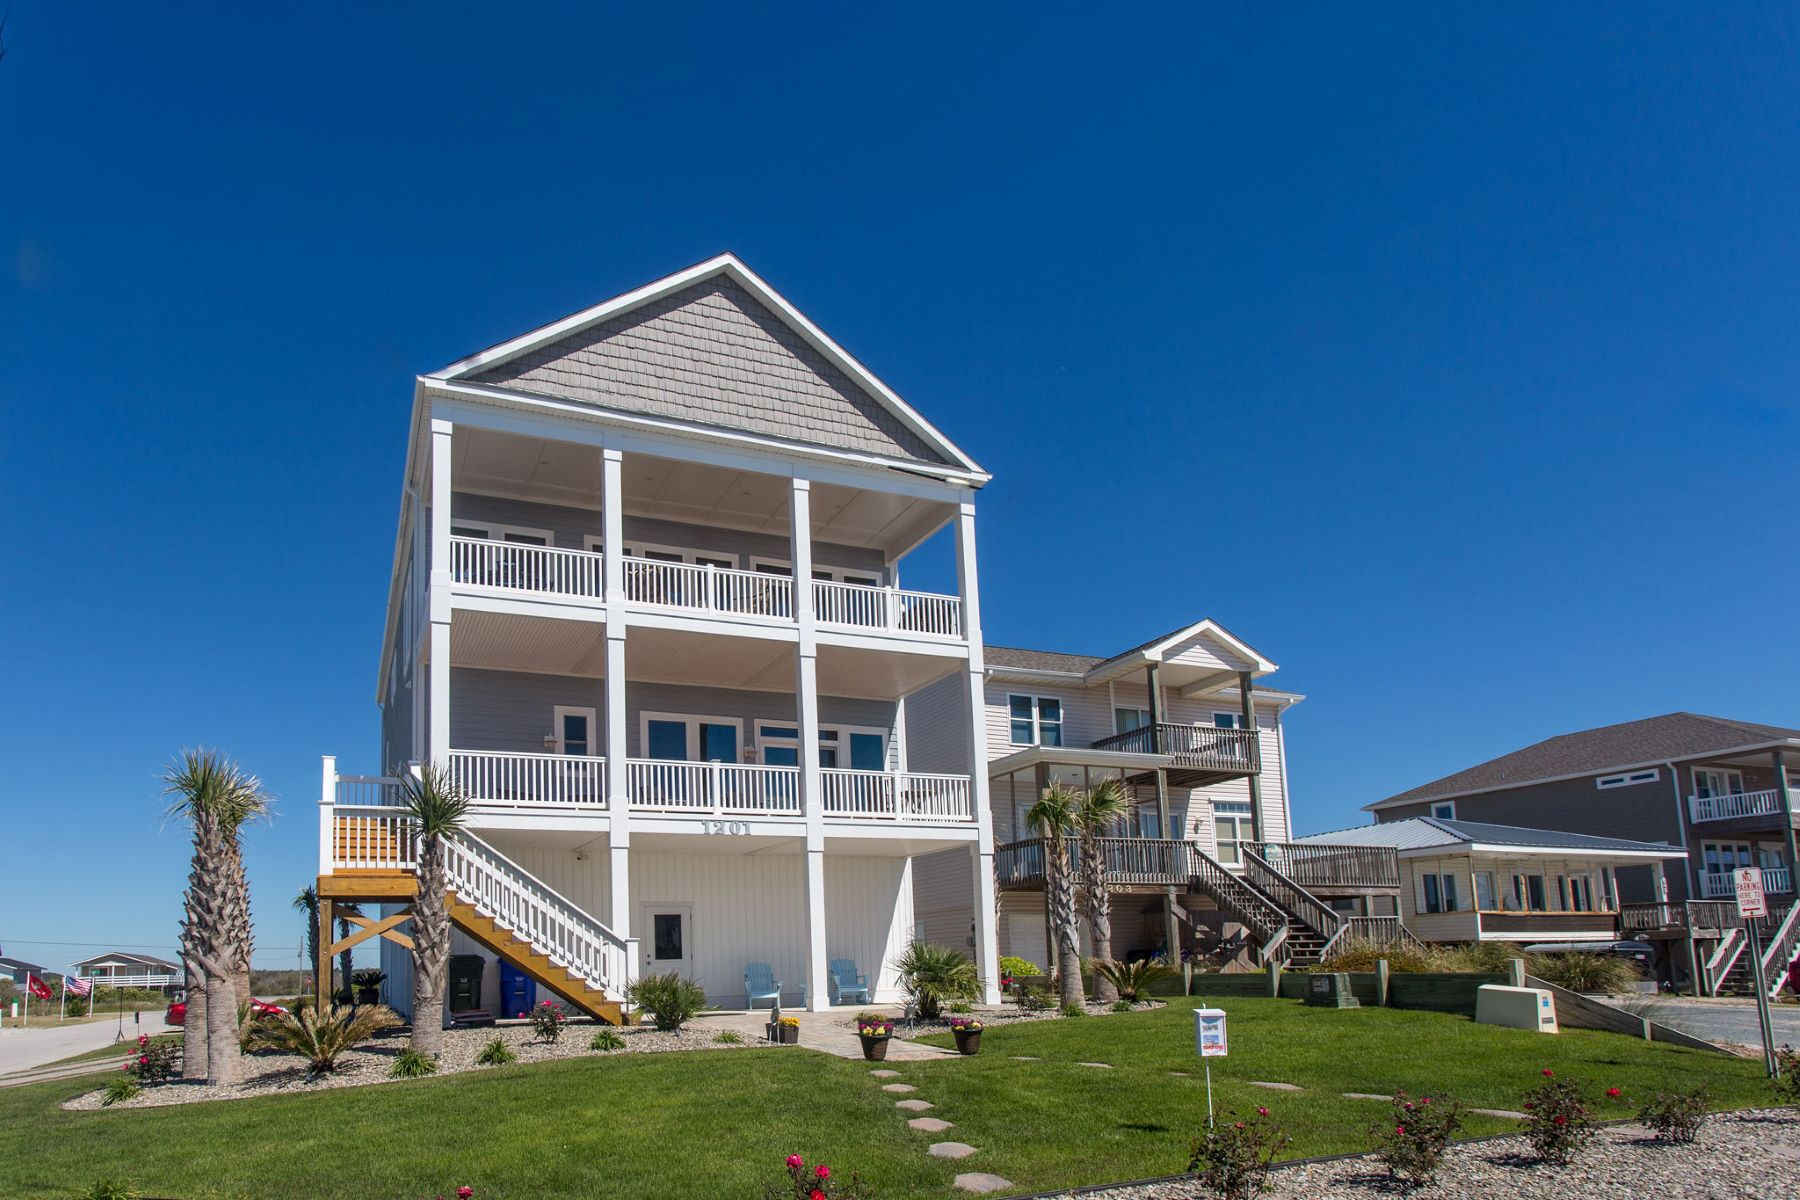 Single Family Homes for Active at Beach Living with Expansive Oceanfront Views 1201 N Shore Drive Surf City, North Carolina 28445 United States